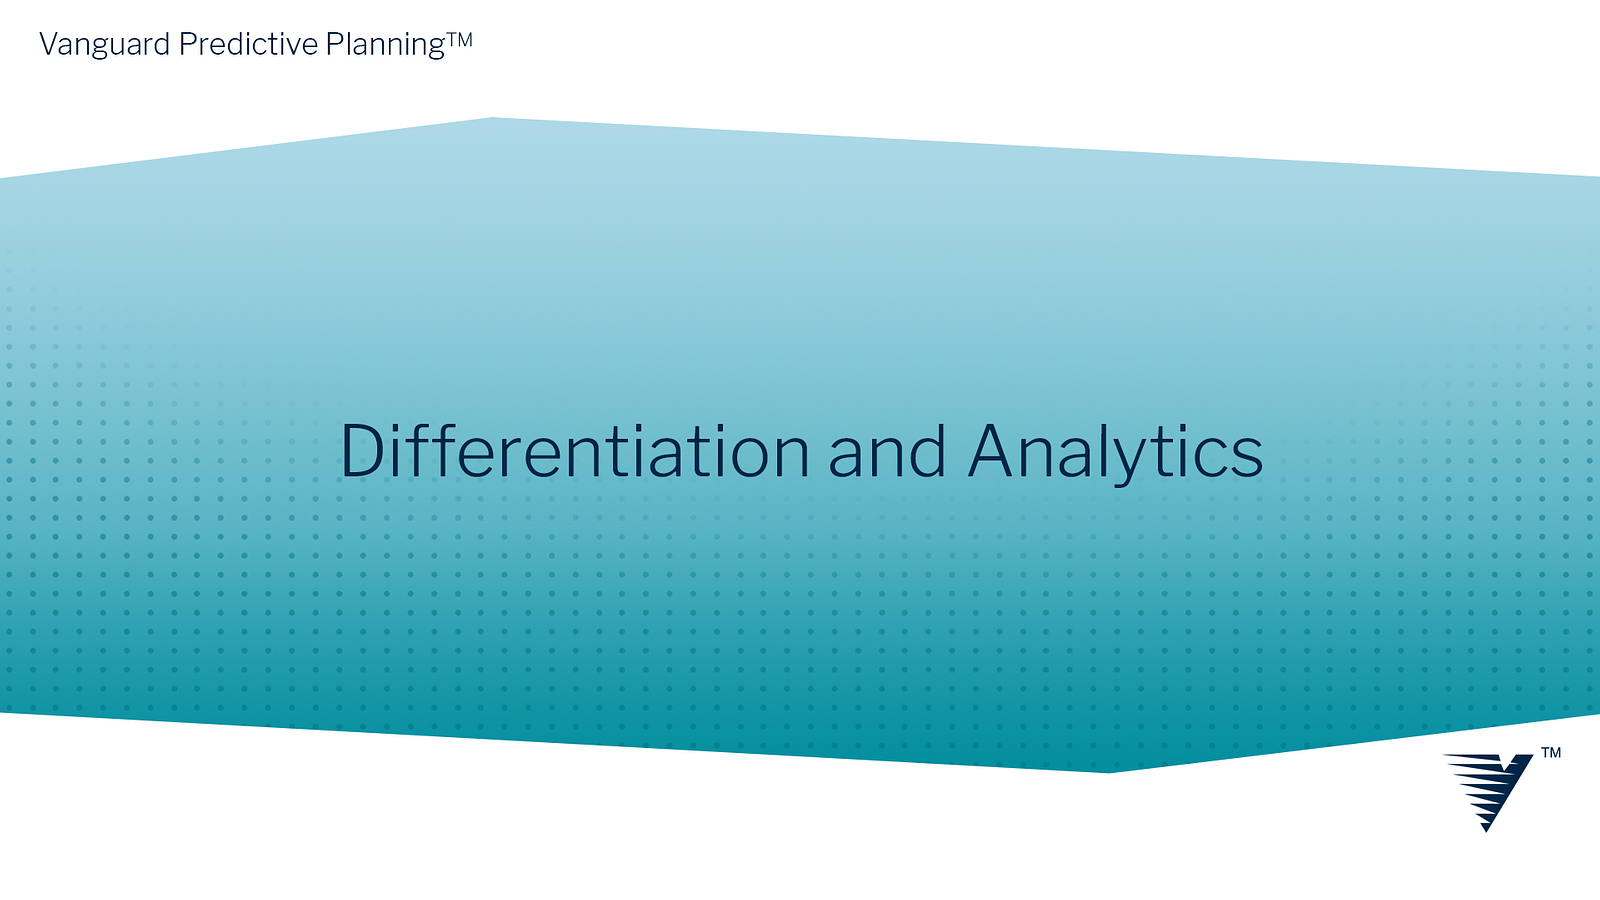 Differentiation and Analytics